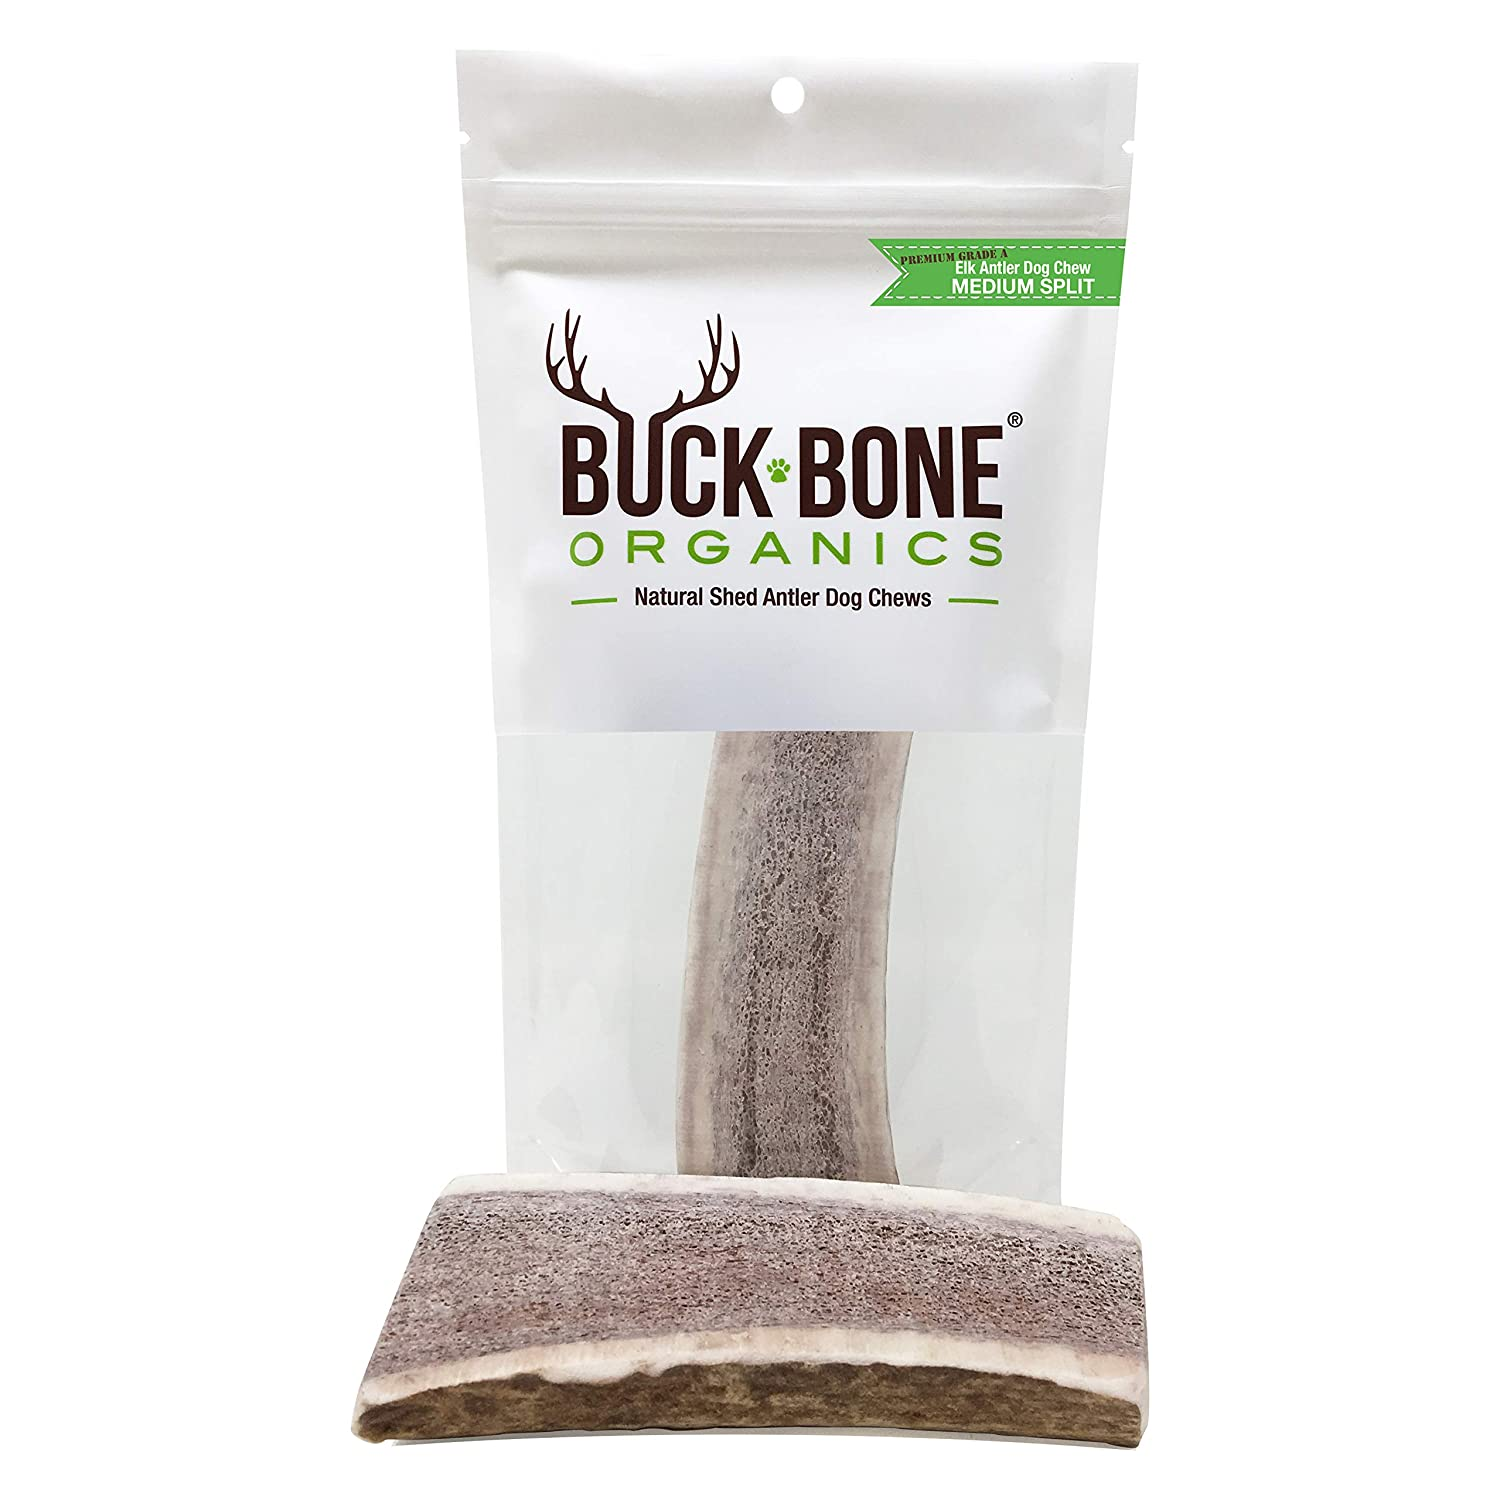 Buck Bone Organics Elk Antlers For Dogs, Premium Grade A – Naturally Sourced From Shed Antler, Split Antlers 5-7 In Length, Made in the USA